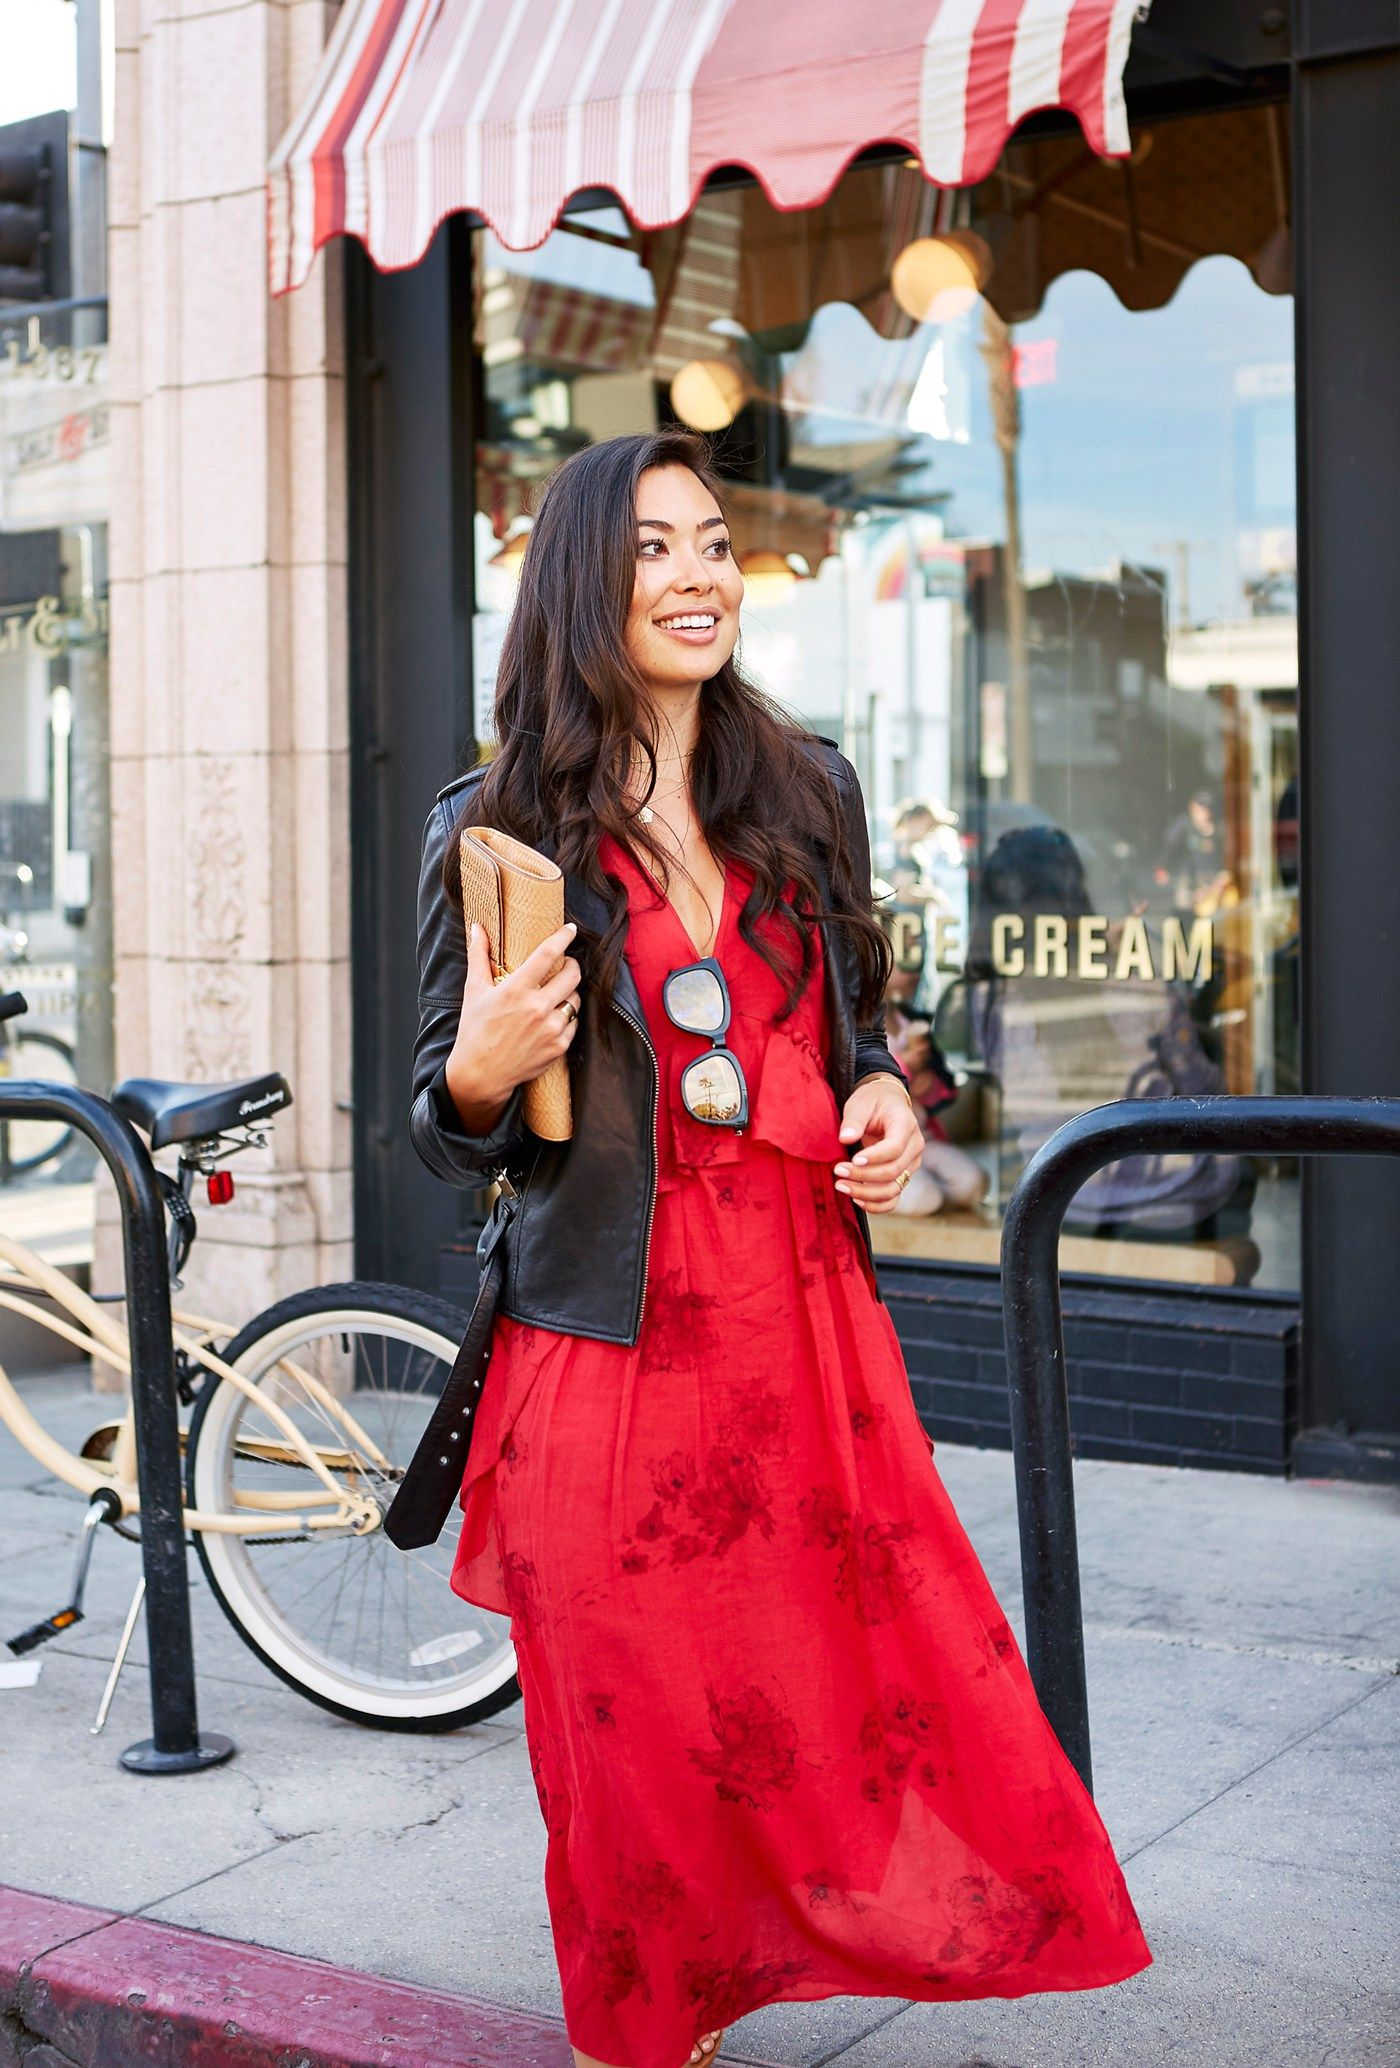 Red Dress for Date Night With Love From Kat Red outfit